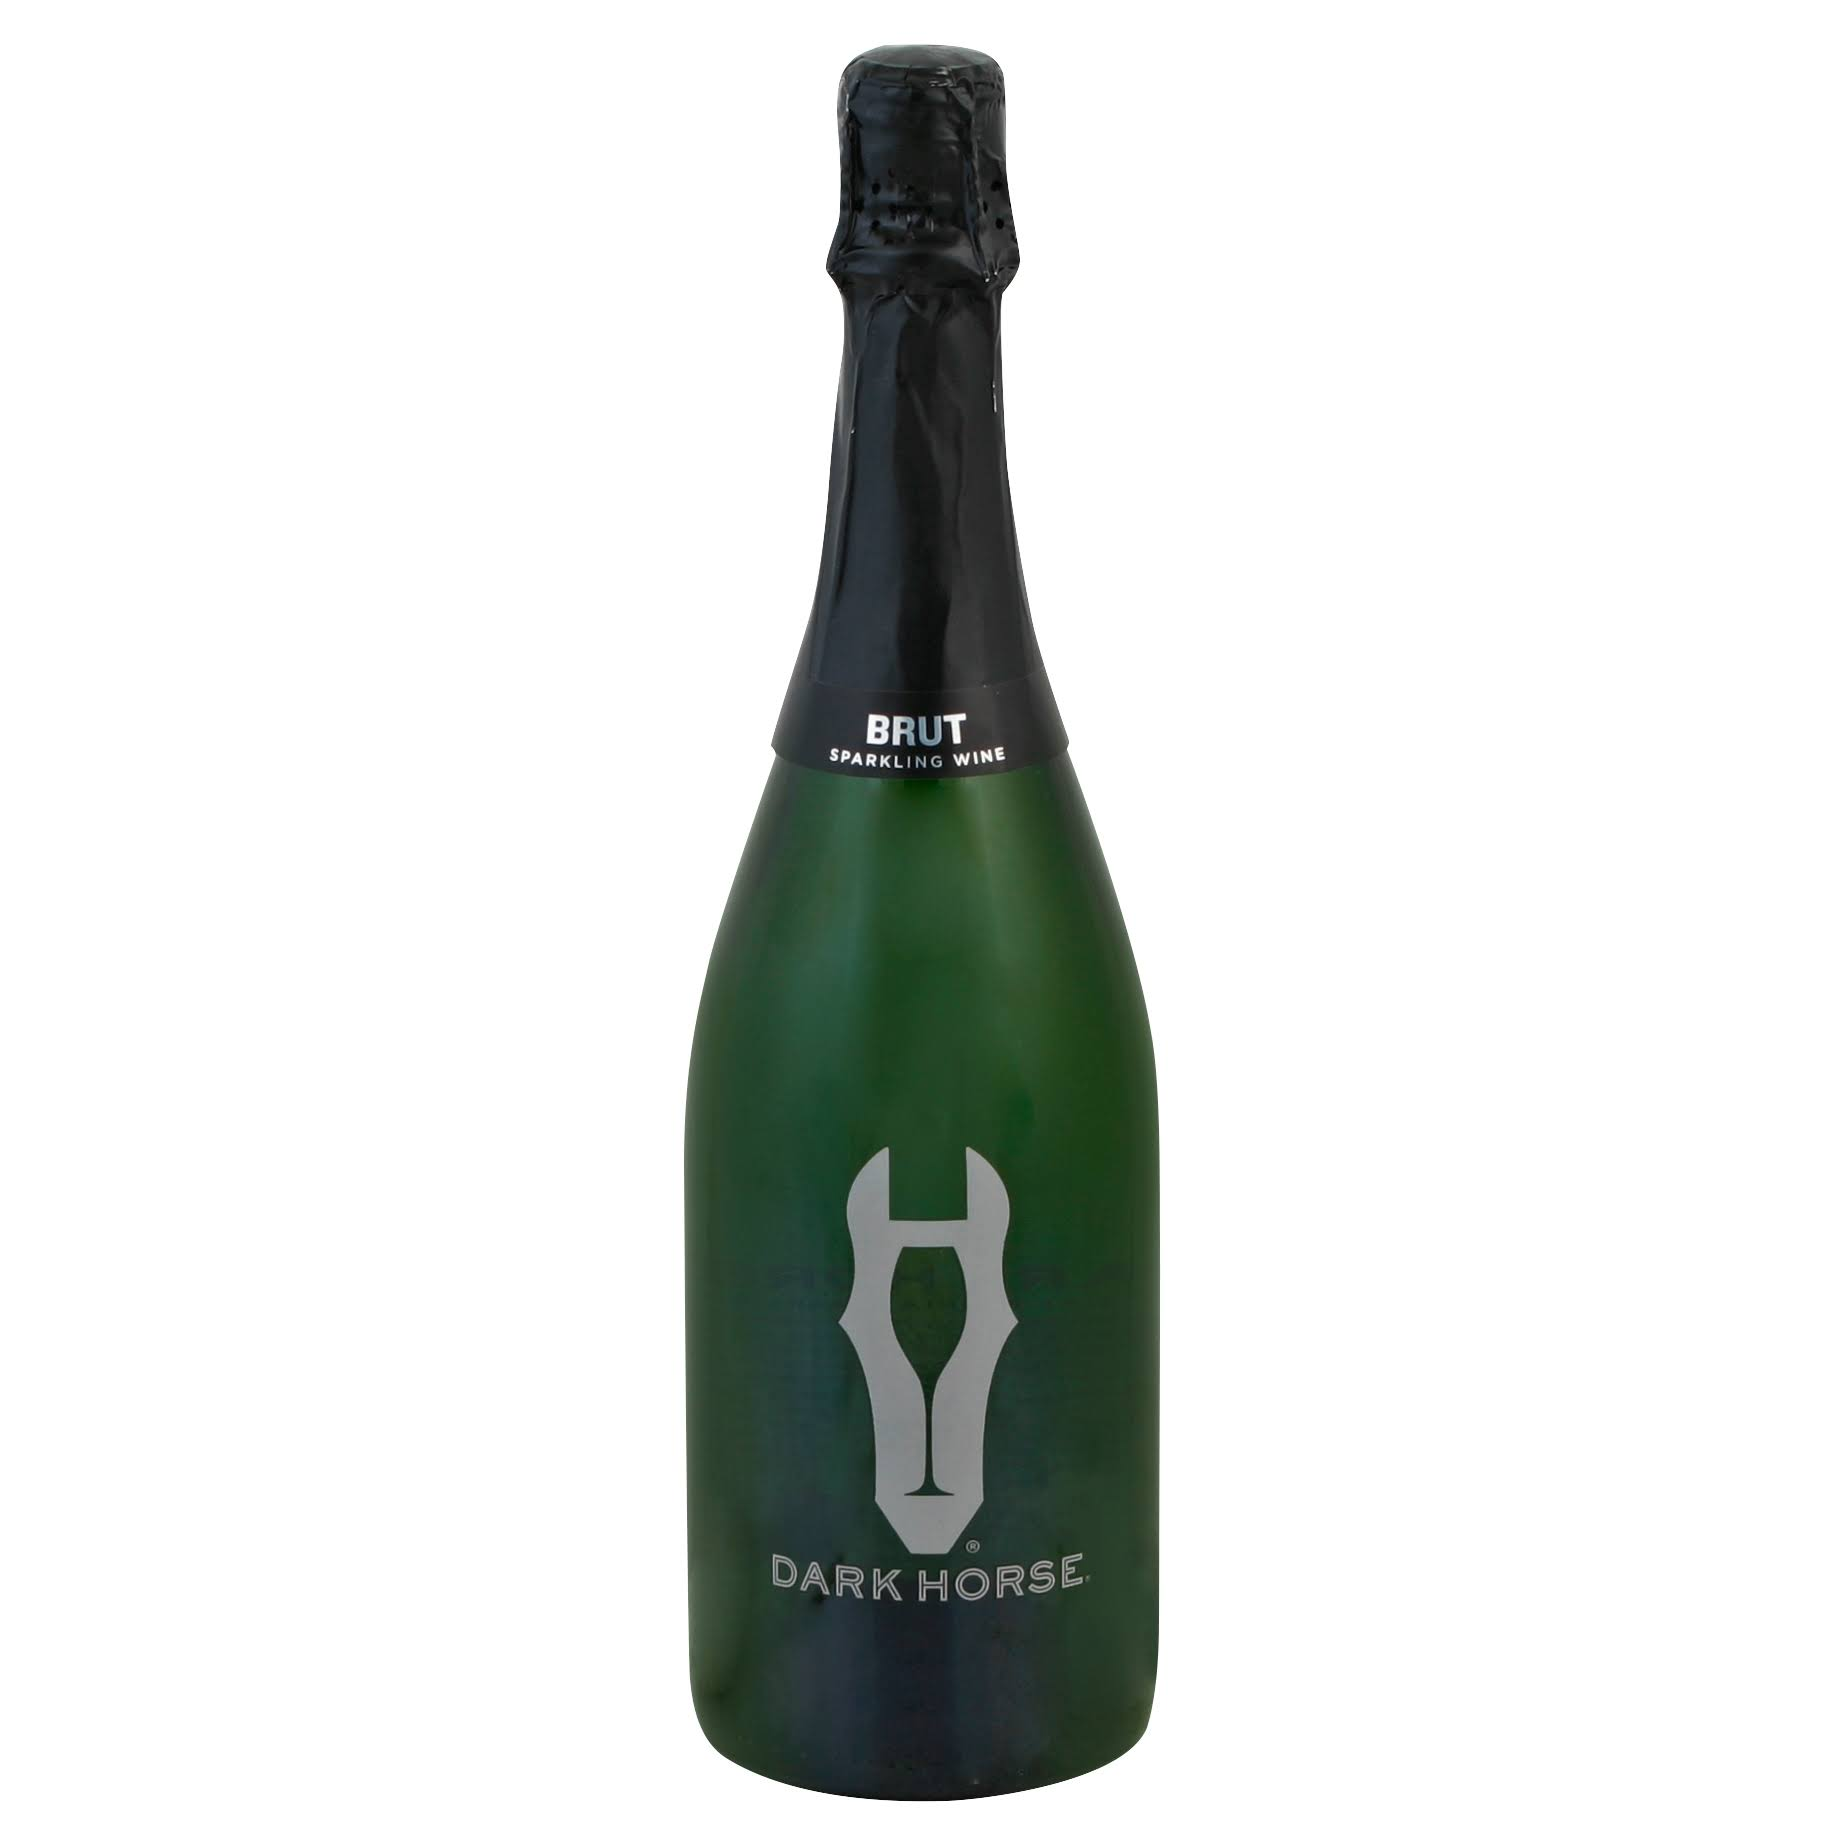 Dark Horse Brut, California - 750 ml